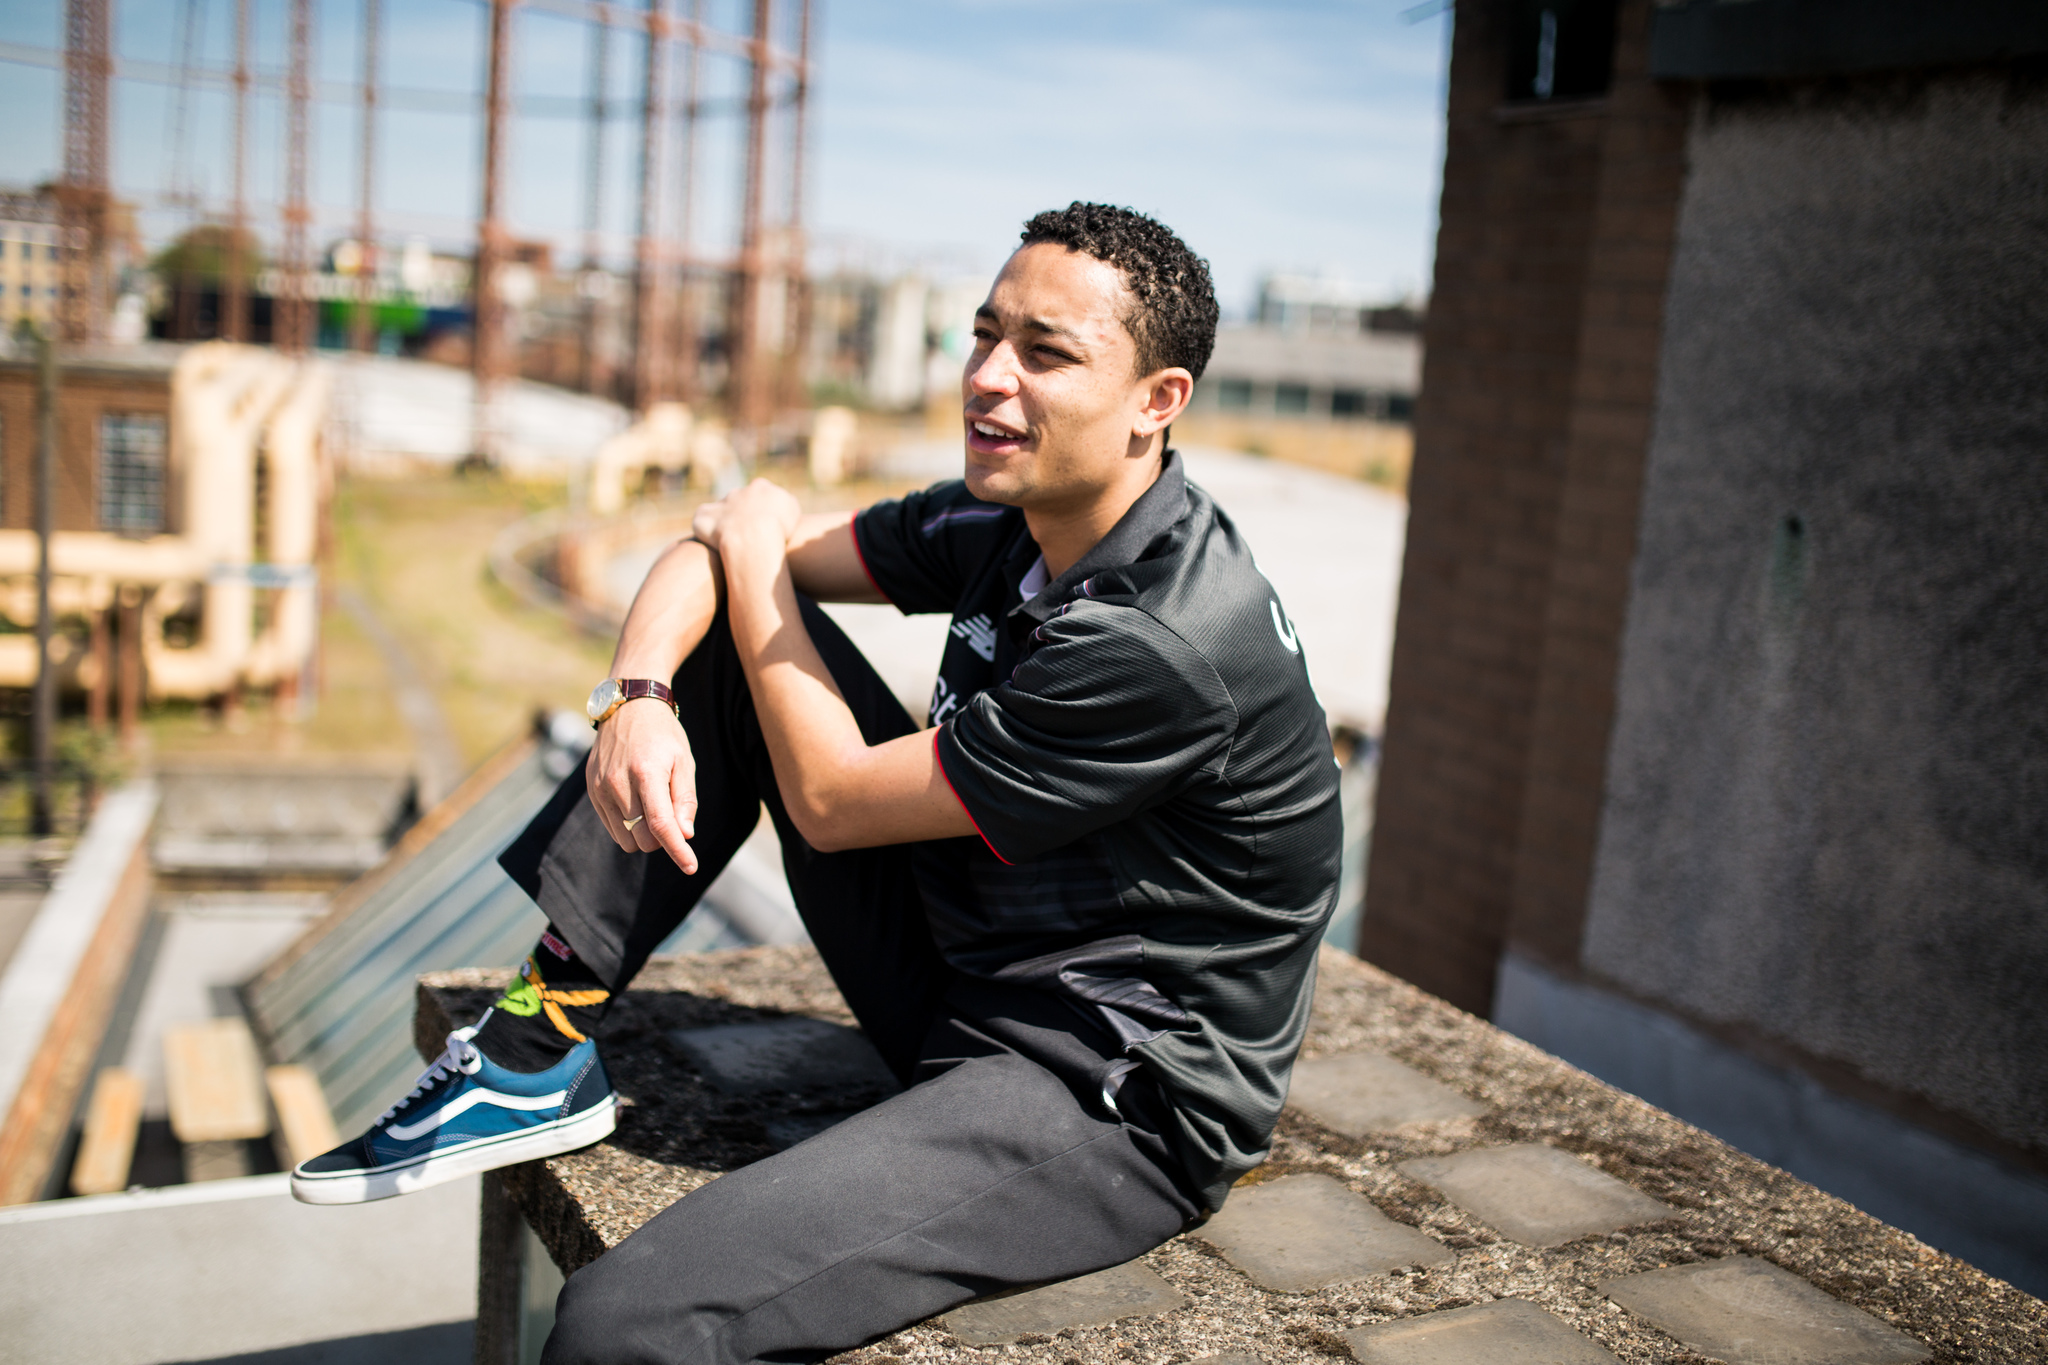 The fearless, family-led life of Loyle Carner